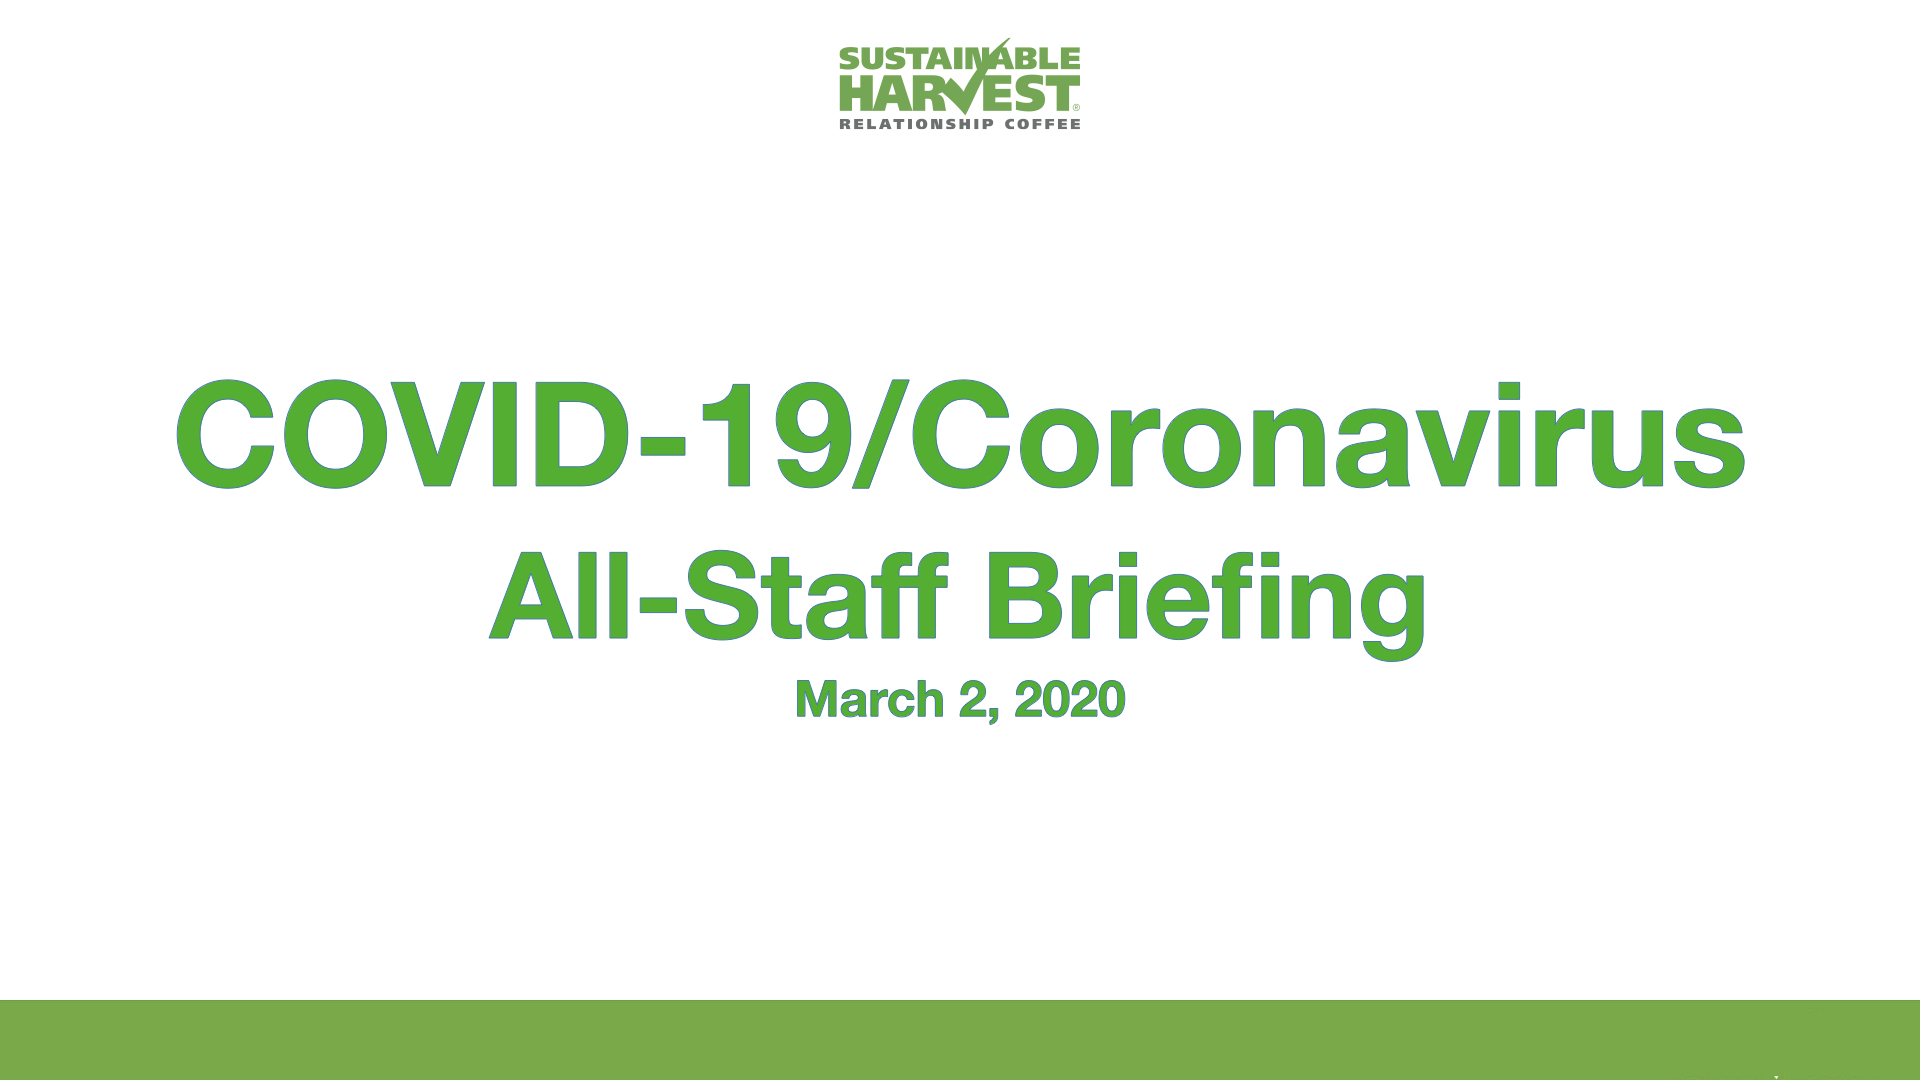 All-Staff Briefing on COVID-19 - EN (2).001